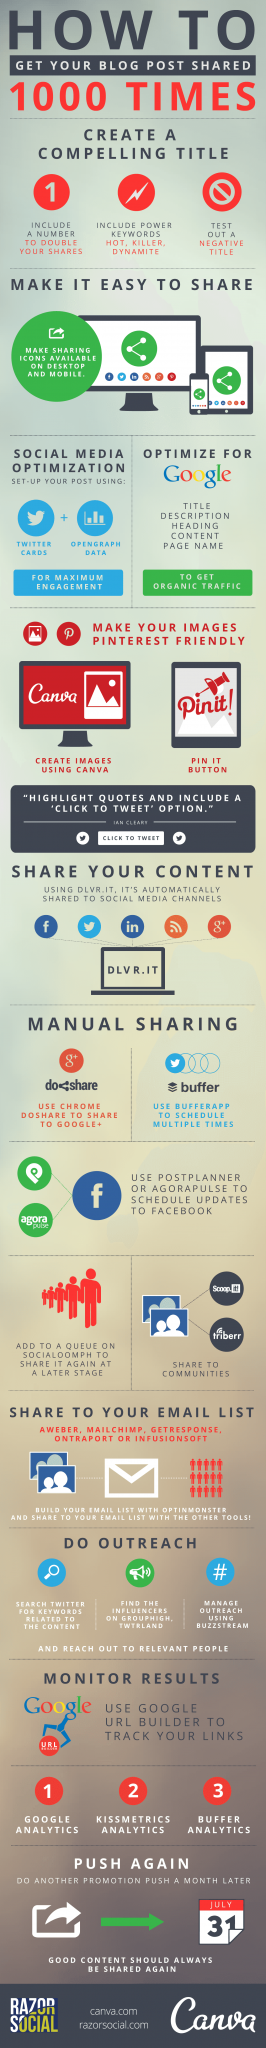 how to share your blog